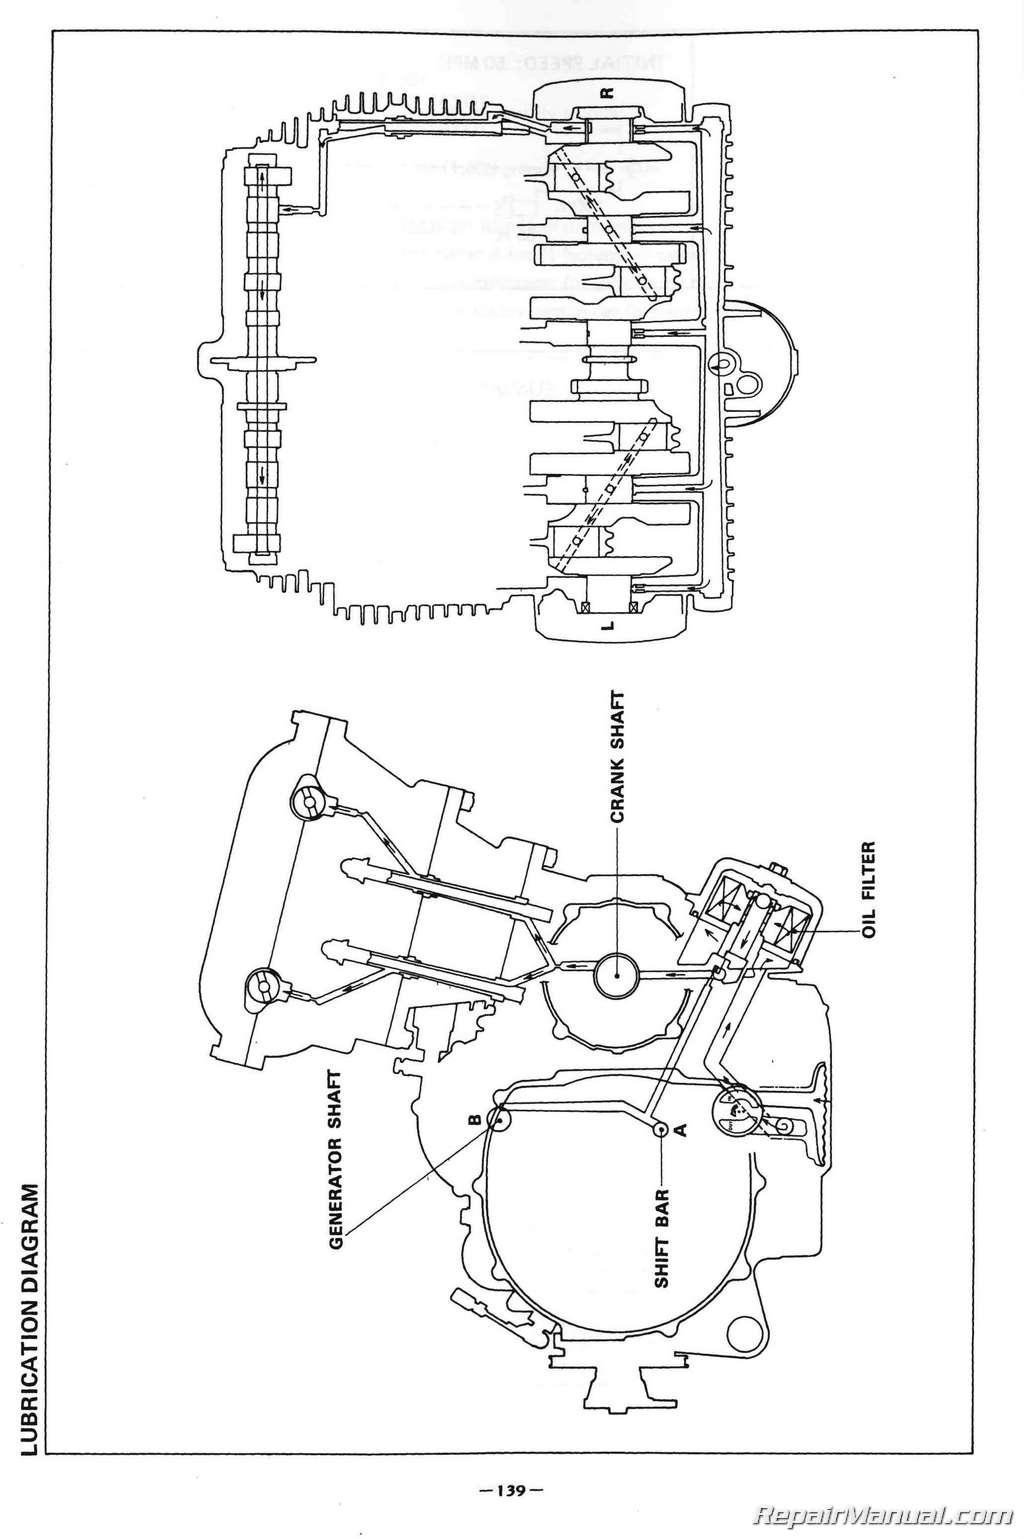 1981 Flh Ignition Wiring Diagram Yamaha Xj650 Simple Diagram1981 Library Maxim